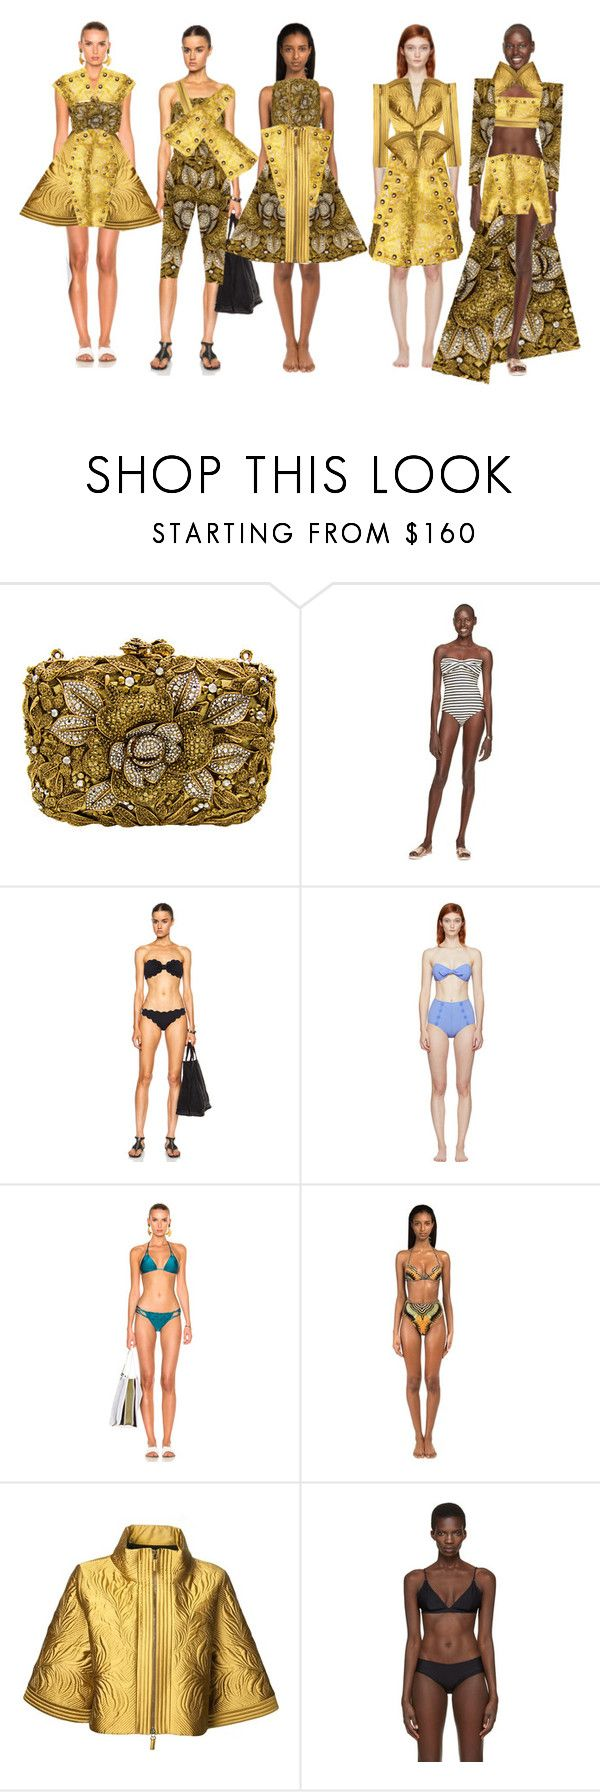 """Fashion Collection"" by coppin-s ❤ liked on Polyvore featuring Kate Spade, Marysia Swim, Lisa Marie Fernandez, ADRIANA DEGREAS, Andrew Gn, Etro and Acne Studios"